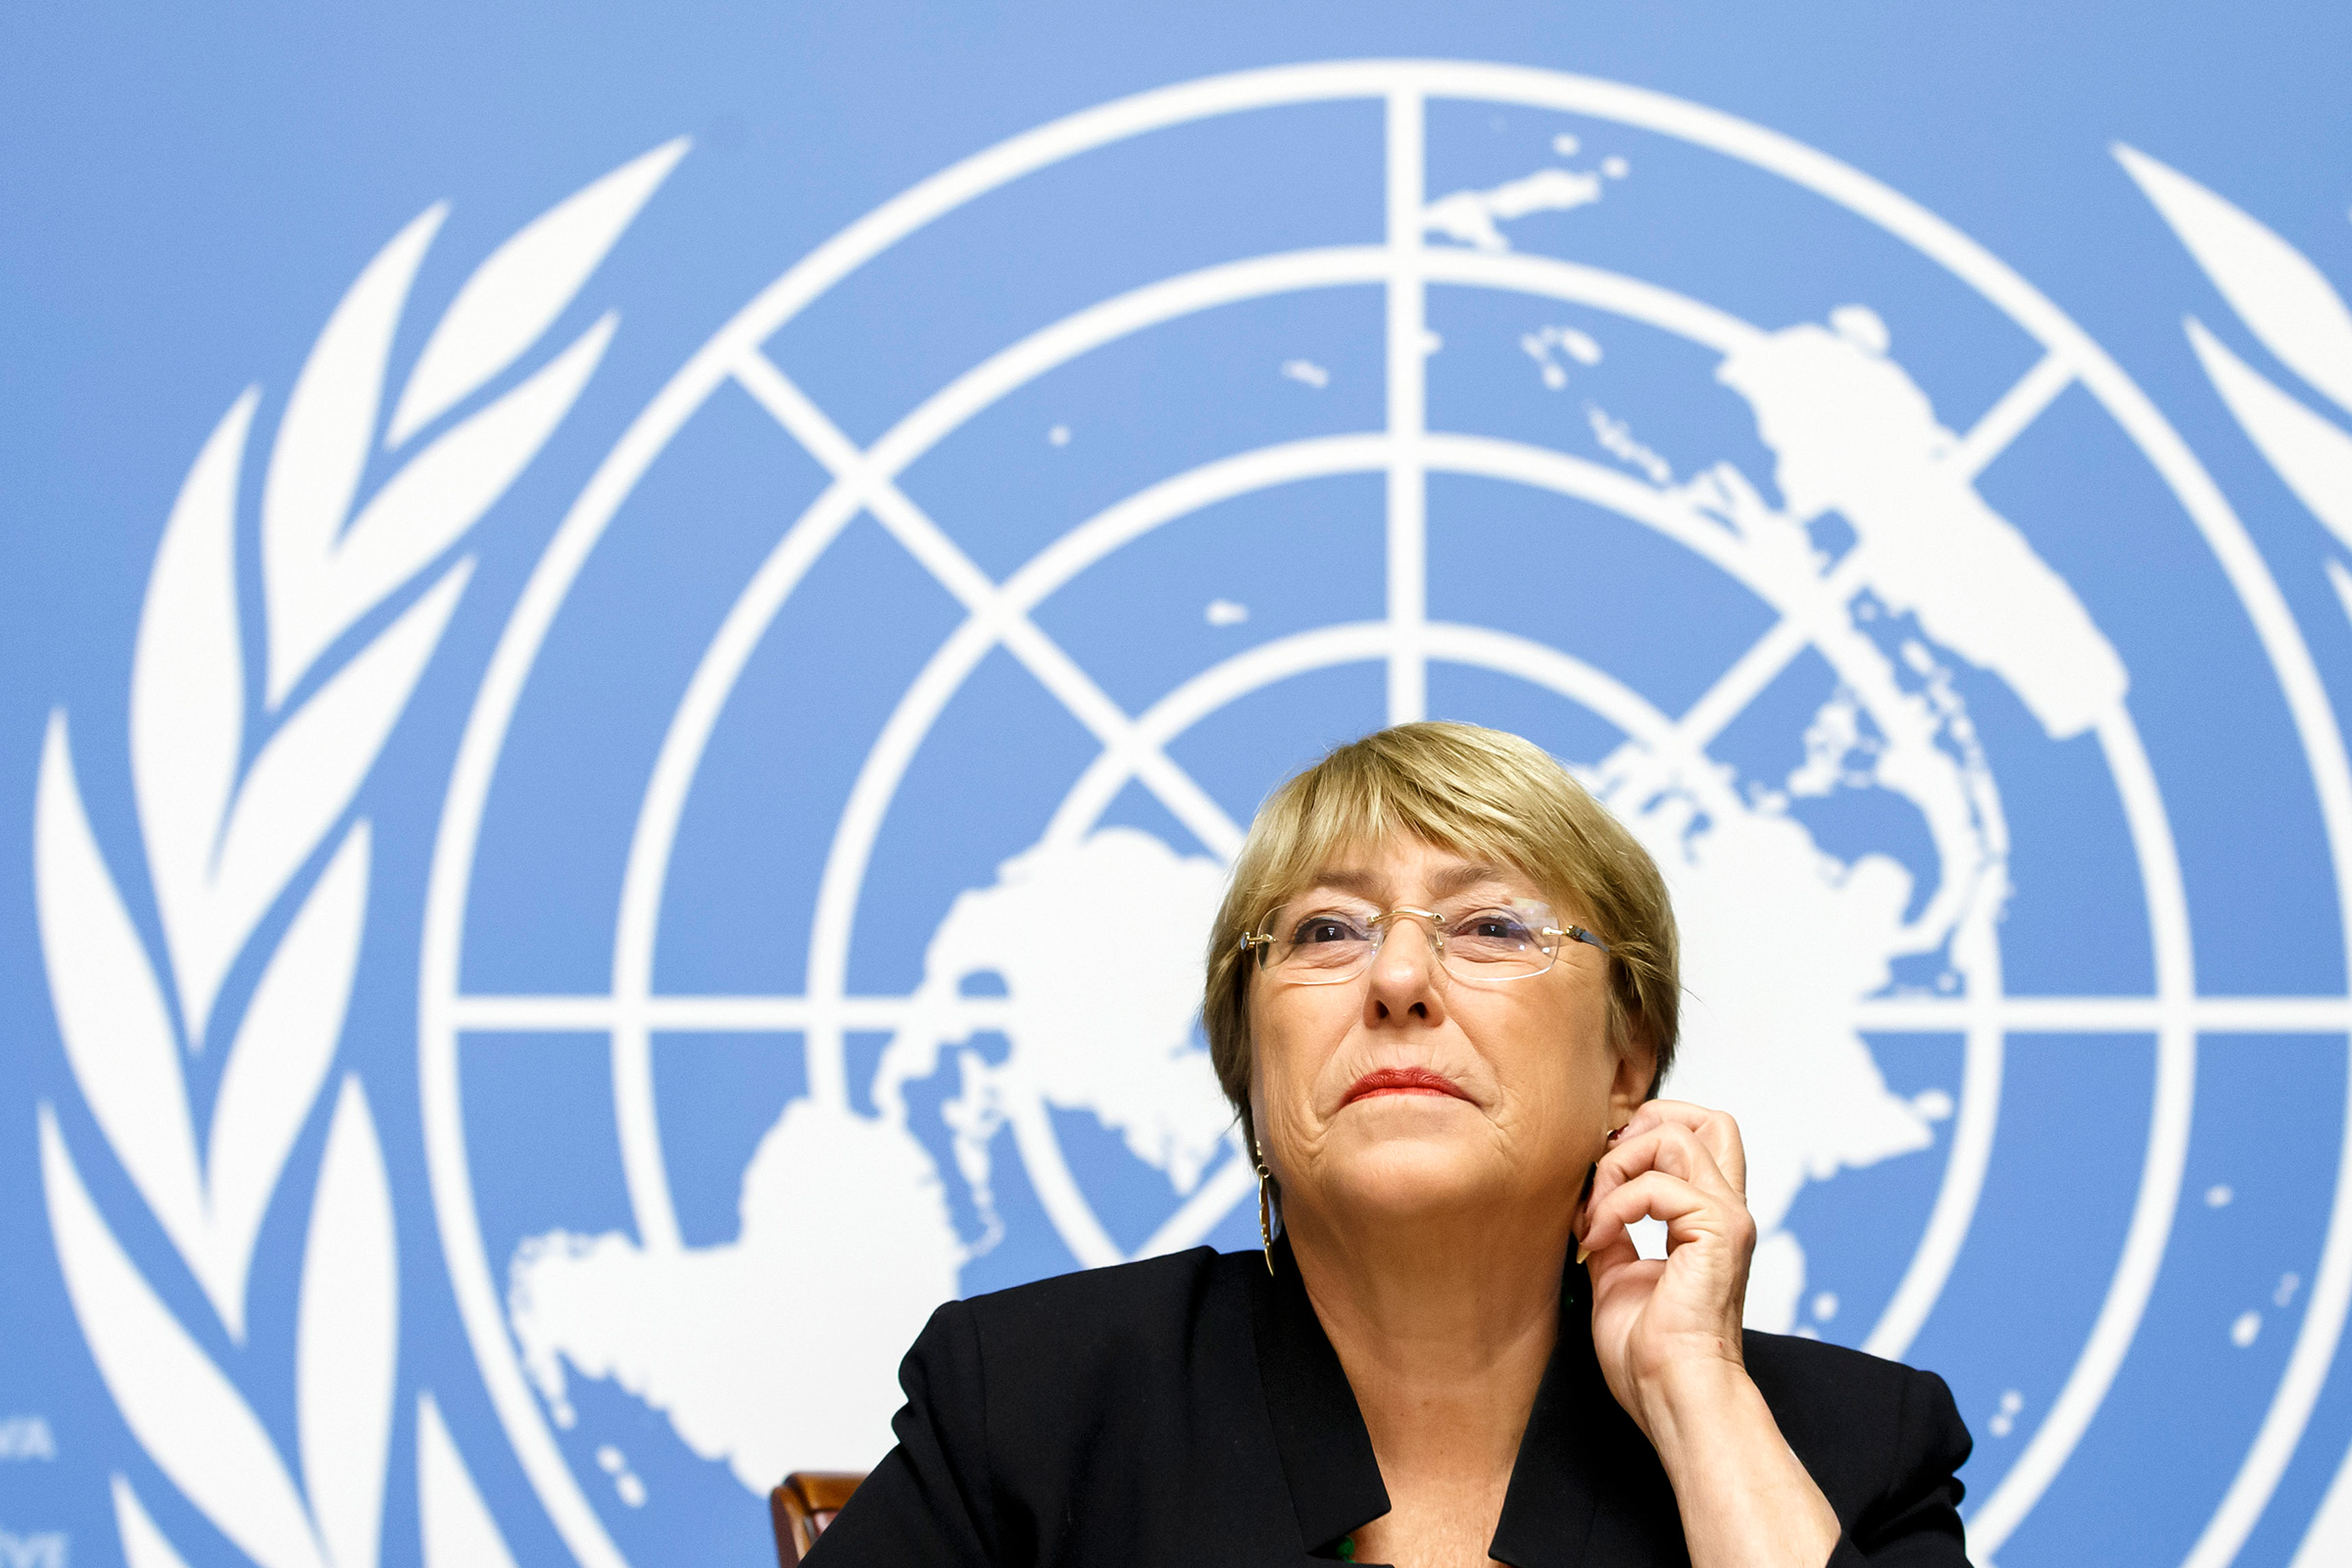 United Nations High Commissioner for Human Rights, Michelle Bachelet, warned about Recession Measures